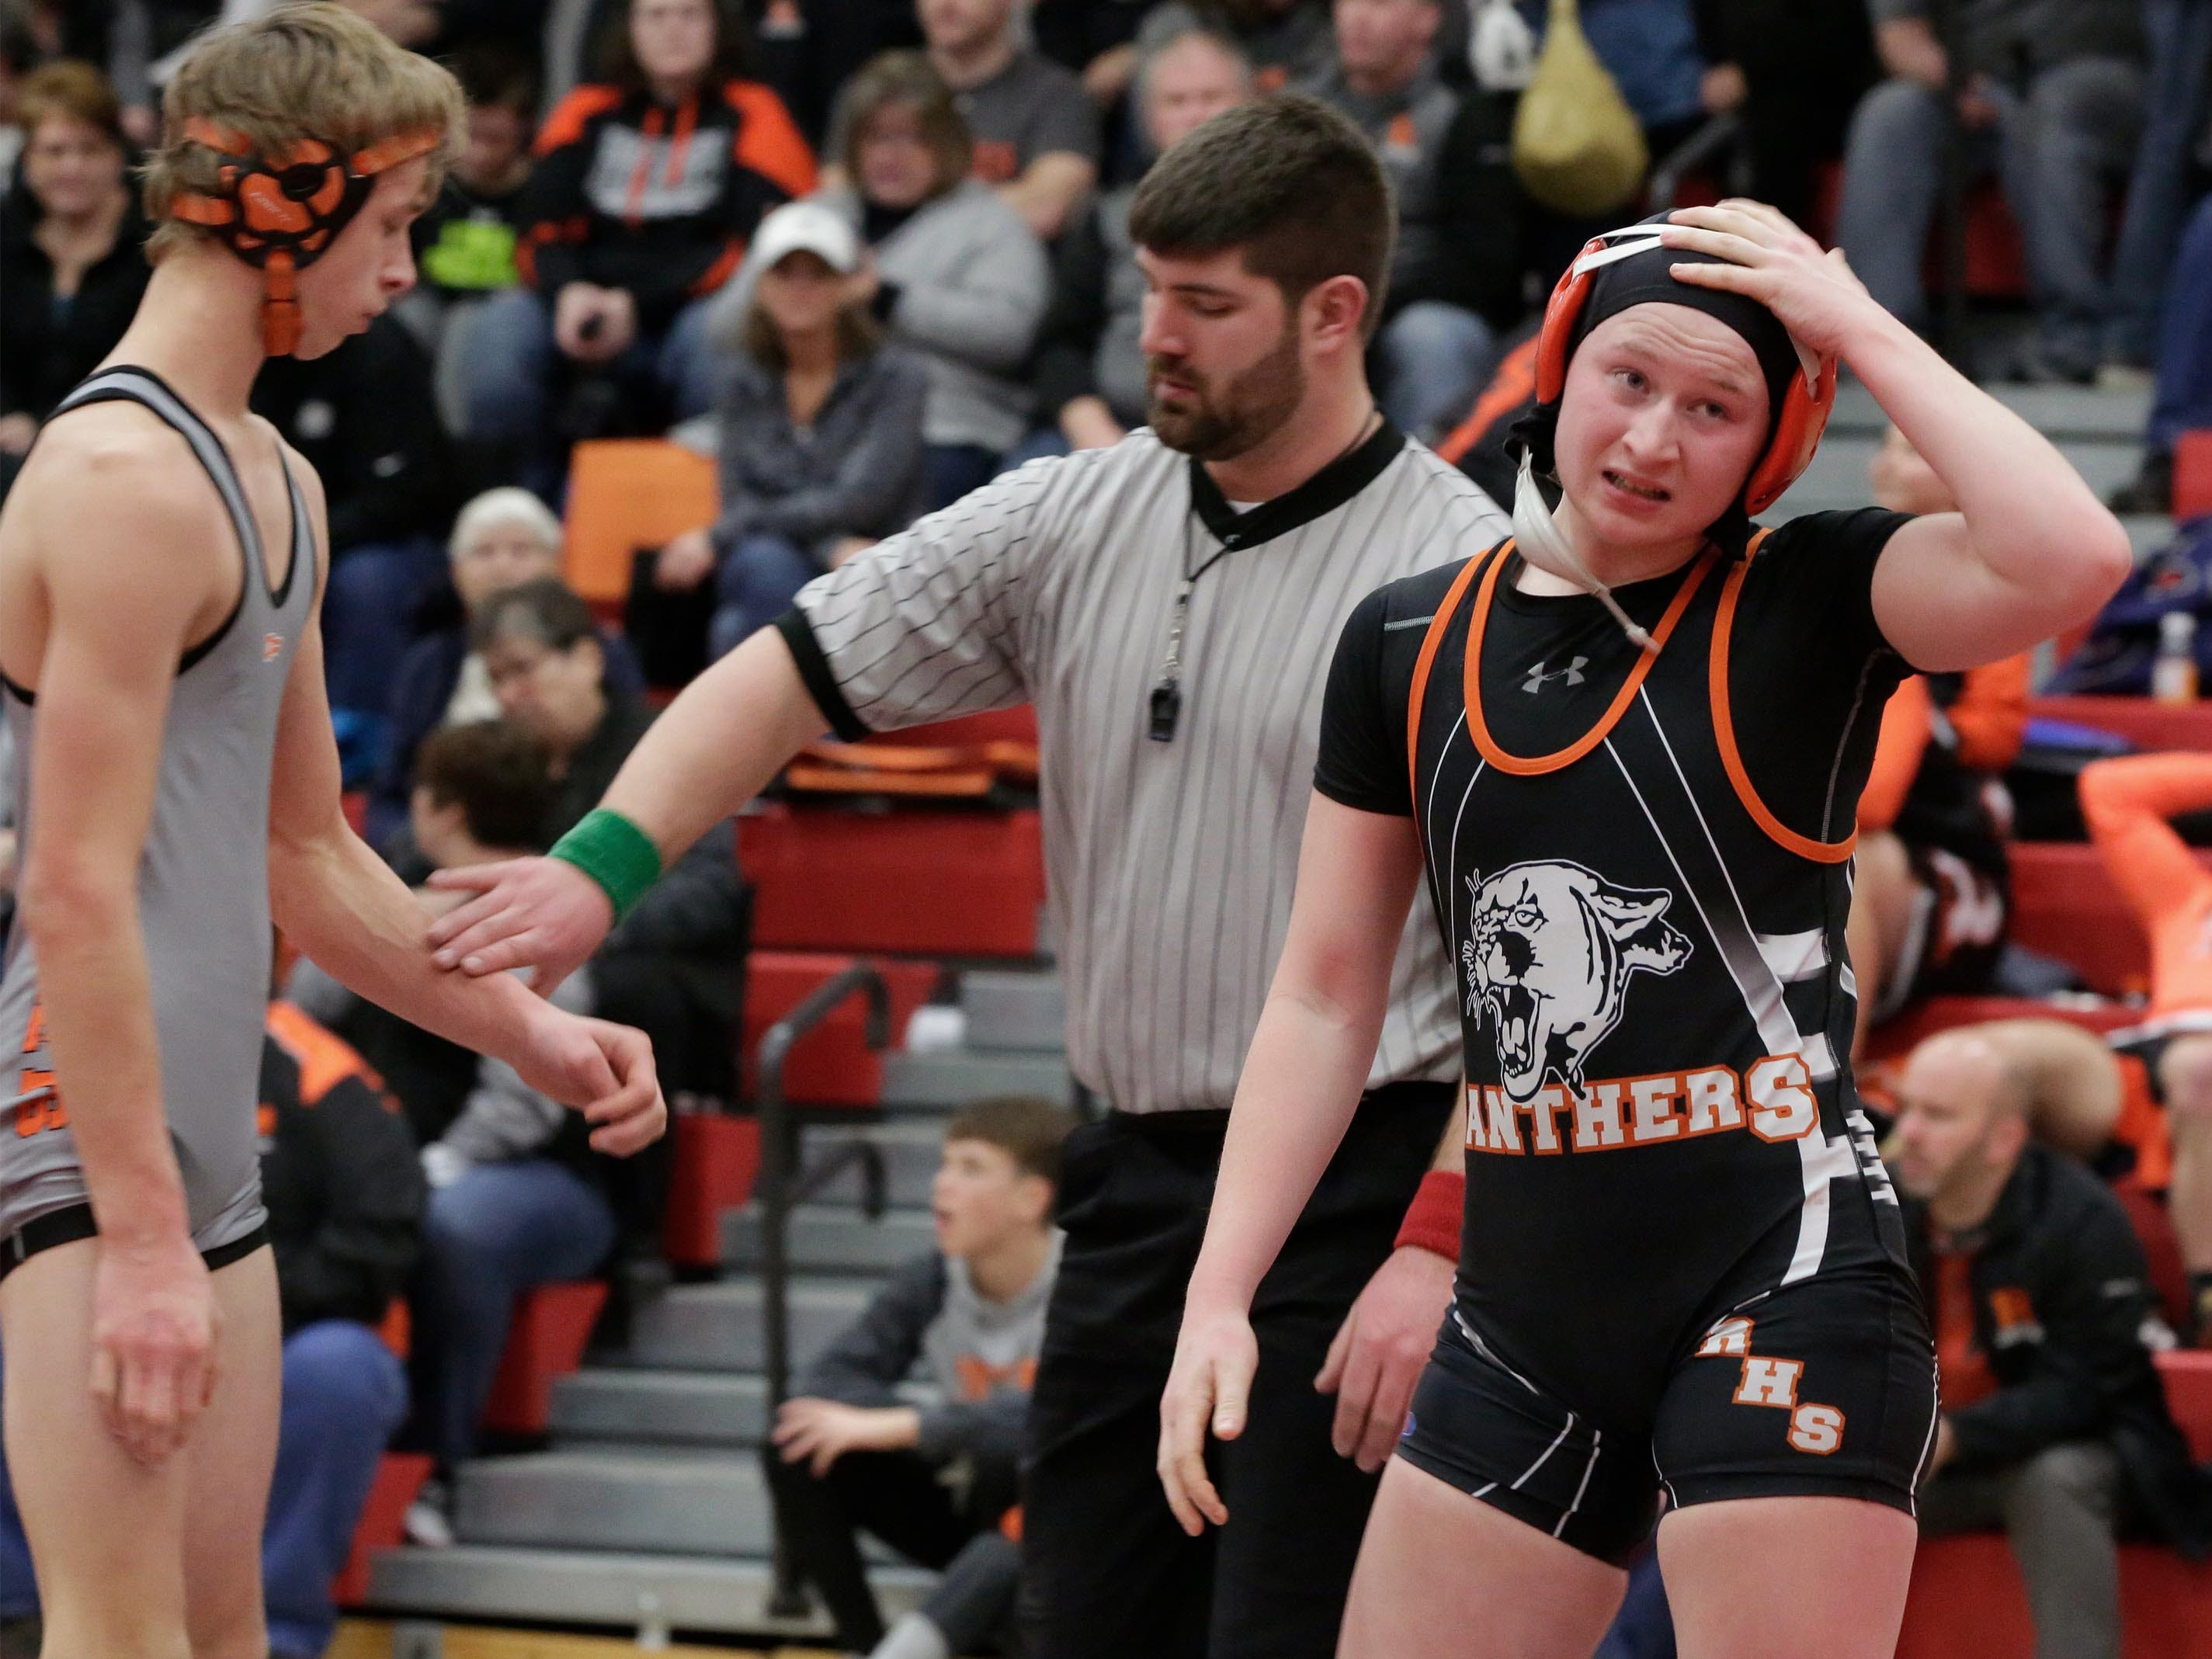 Reedsville's Erin Braun, right, reacts to losing a152-pound match with Cedar Grove-Belgium's Dylan Teunissen, Saturday, February 2, 2019, in Oostburg, Wis.